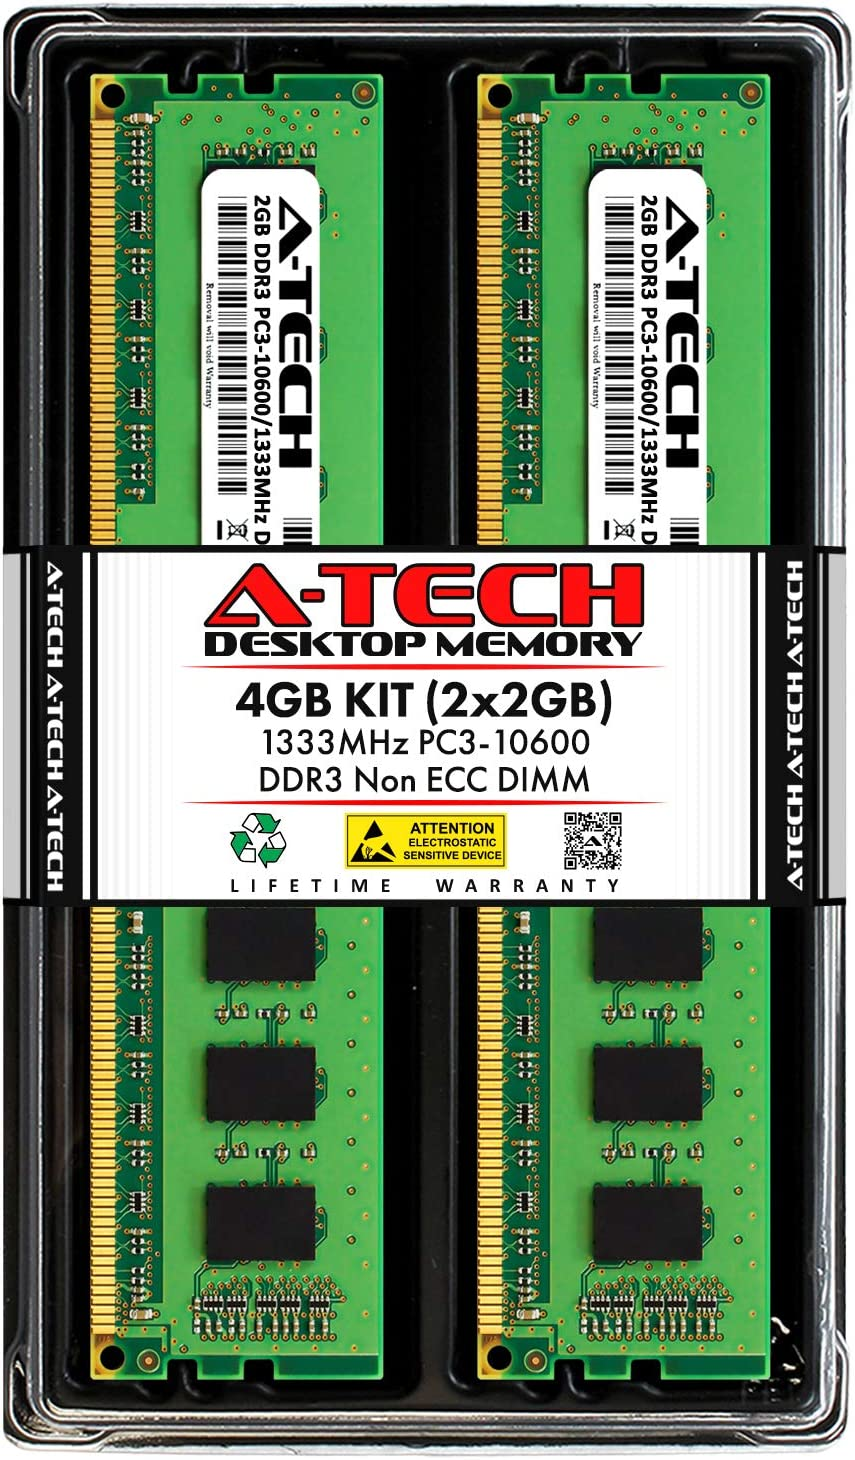 A-Tech 4GB (2 x 2GB) DDR3 1333MHz PC3-10600 Desktop RAM Kit | Non-ECC Unbuffered DIMM 1.5V 240-Pin Memory Upgrade Modules